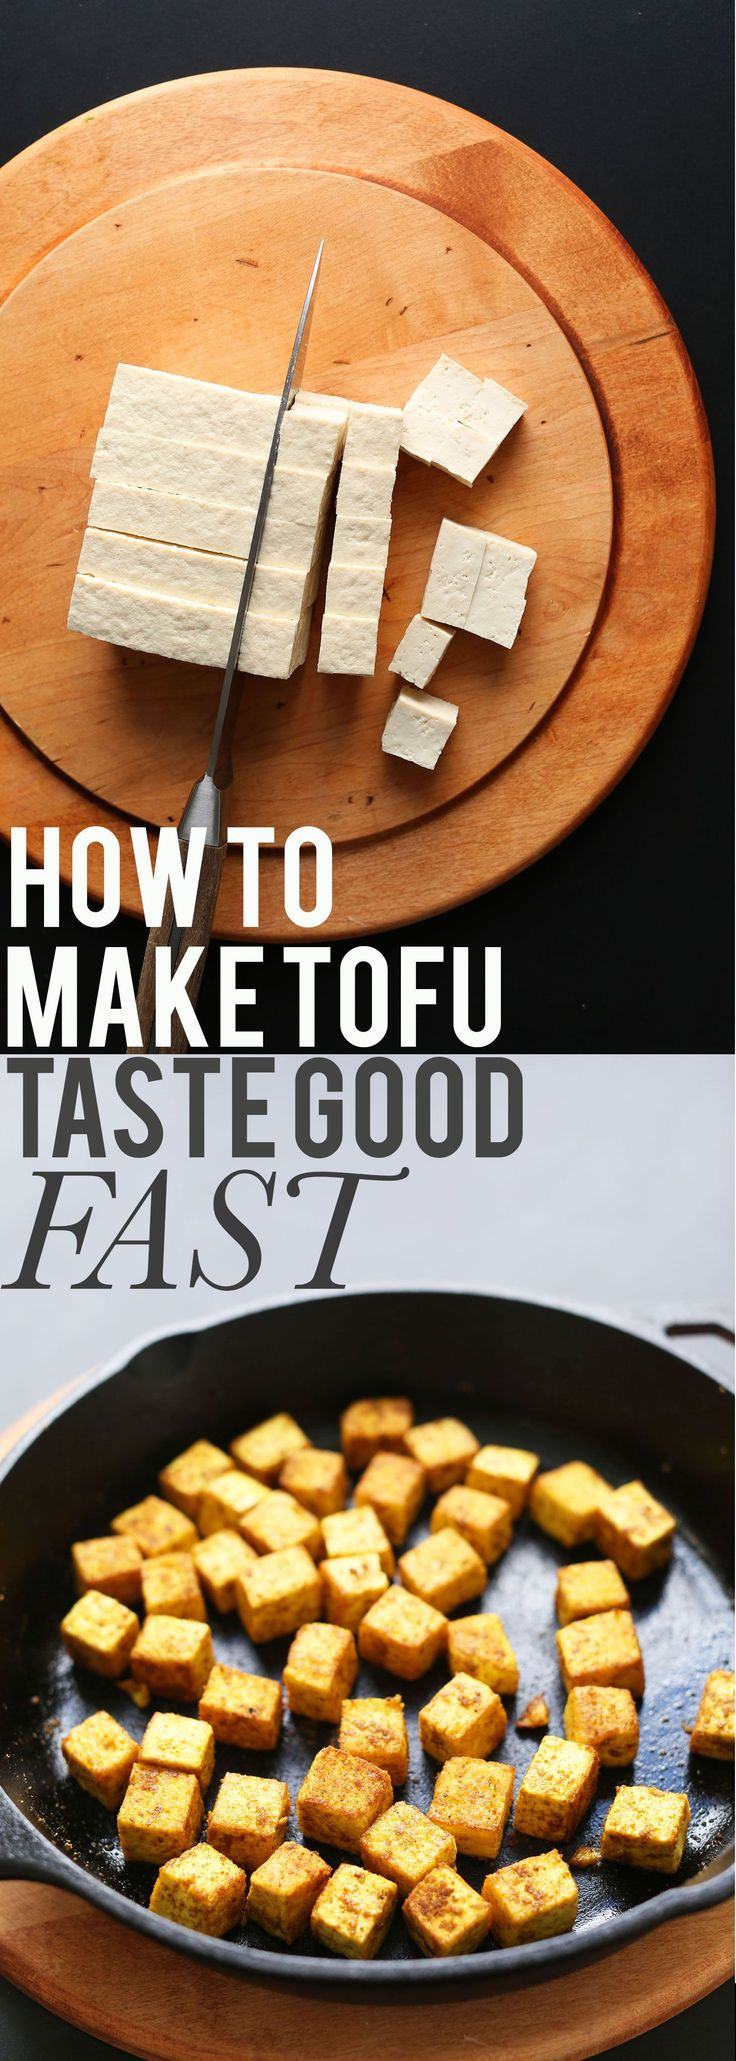 HOW TO Make Tofu Taste Good FAST in 20 minutes! A special method crisps it up WITHOUT FRYING! #vegan #glutenfree #tofu #recipe (Minutes Oil)